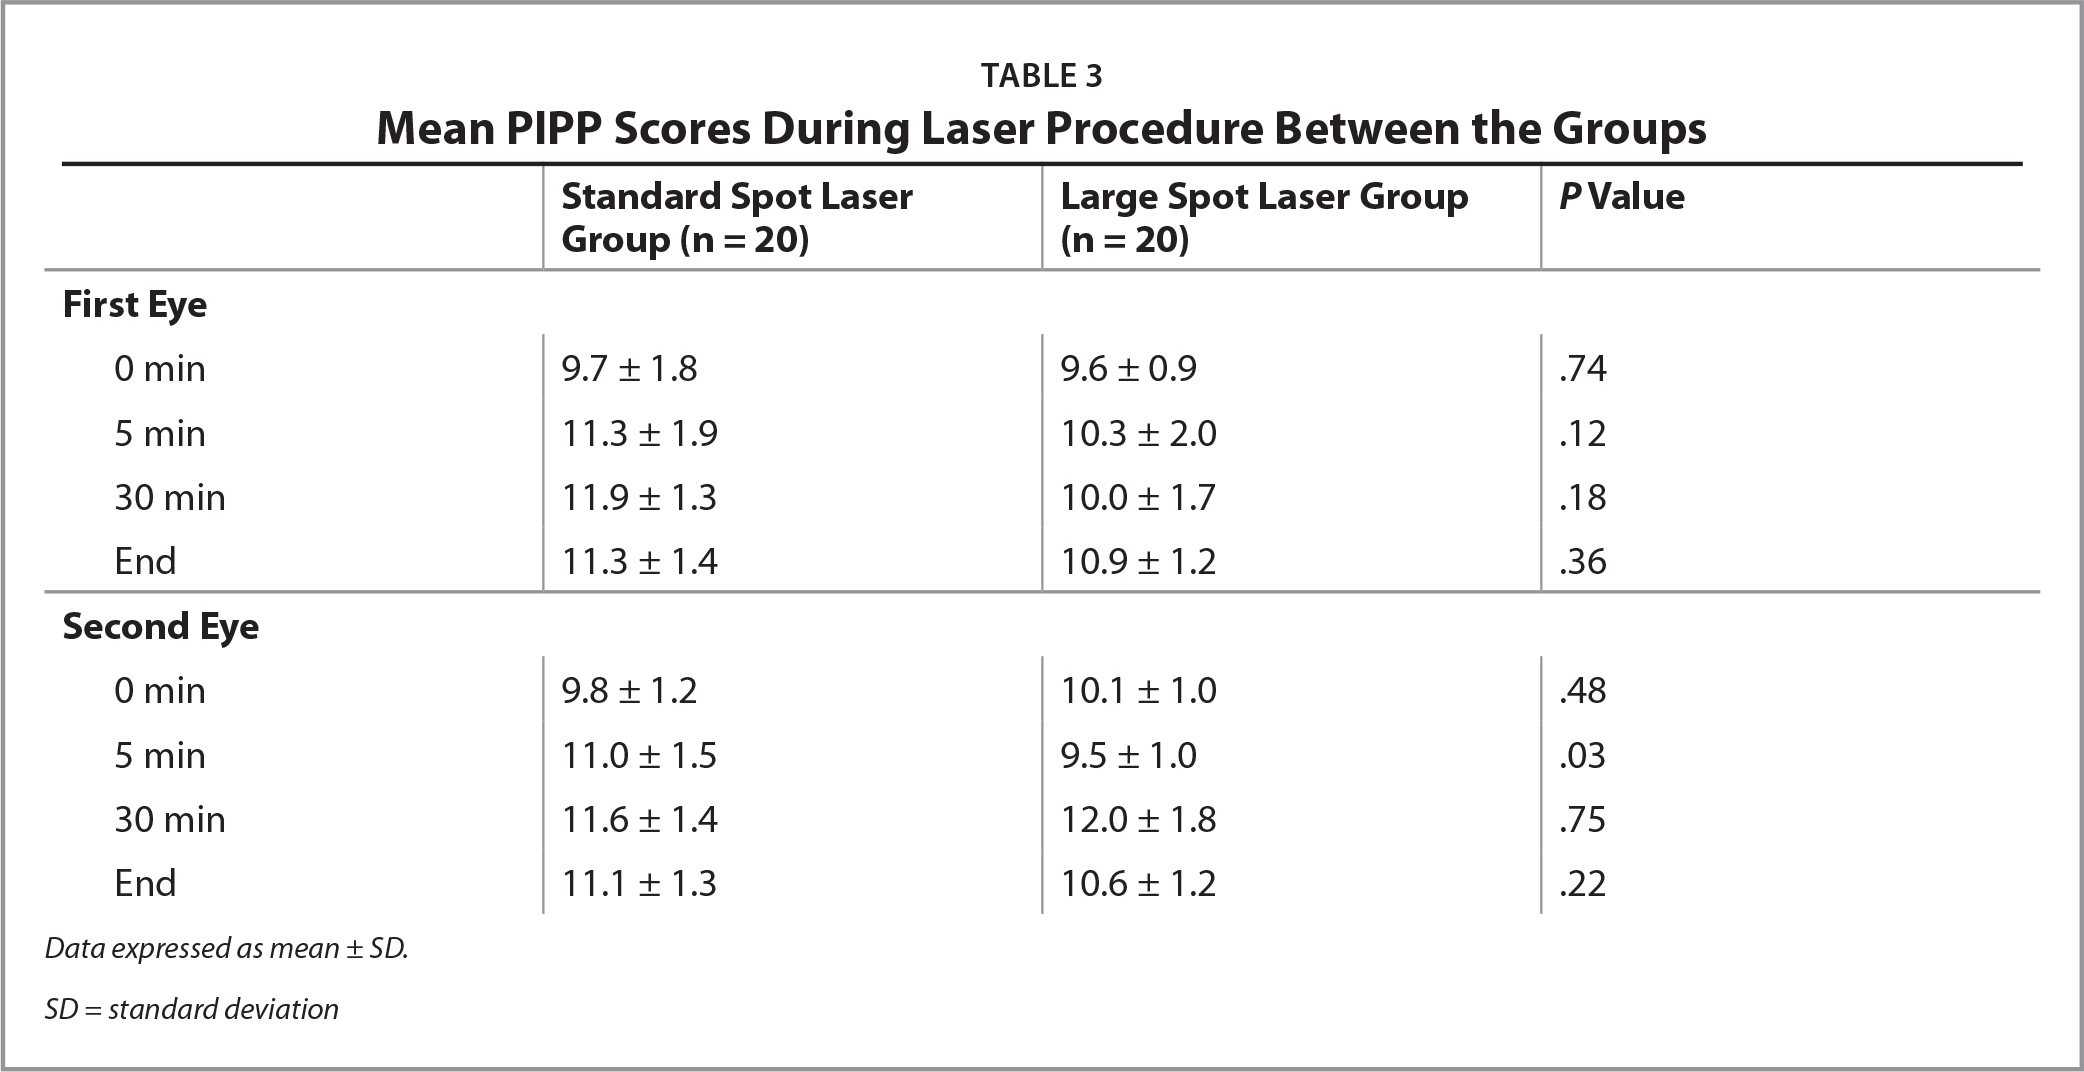 Mean PIPP Scores During Laser Procedure Between the Groups